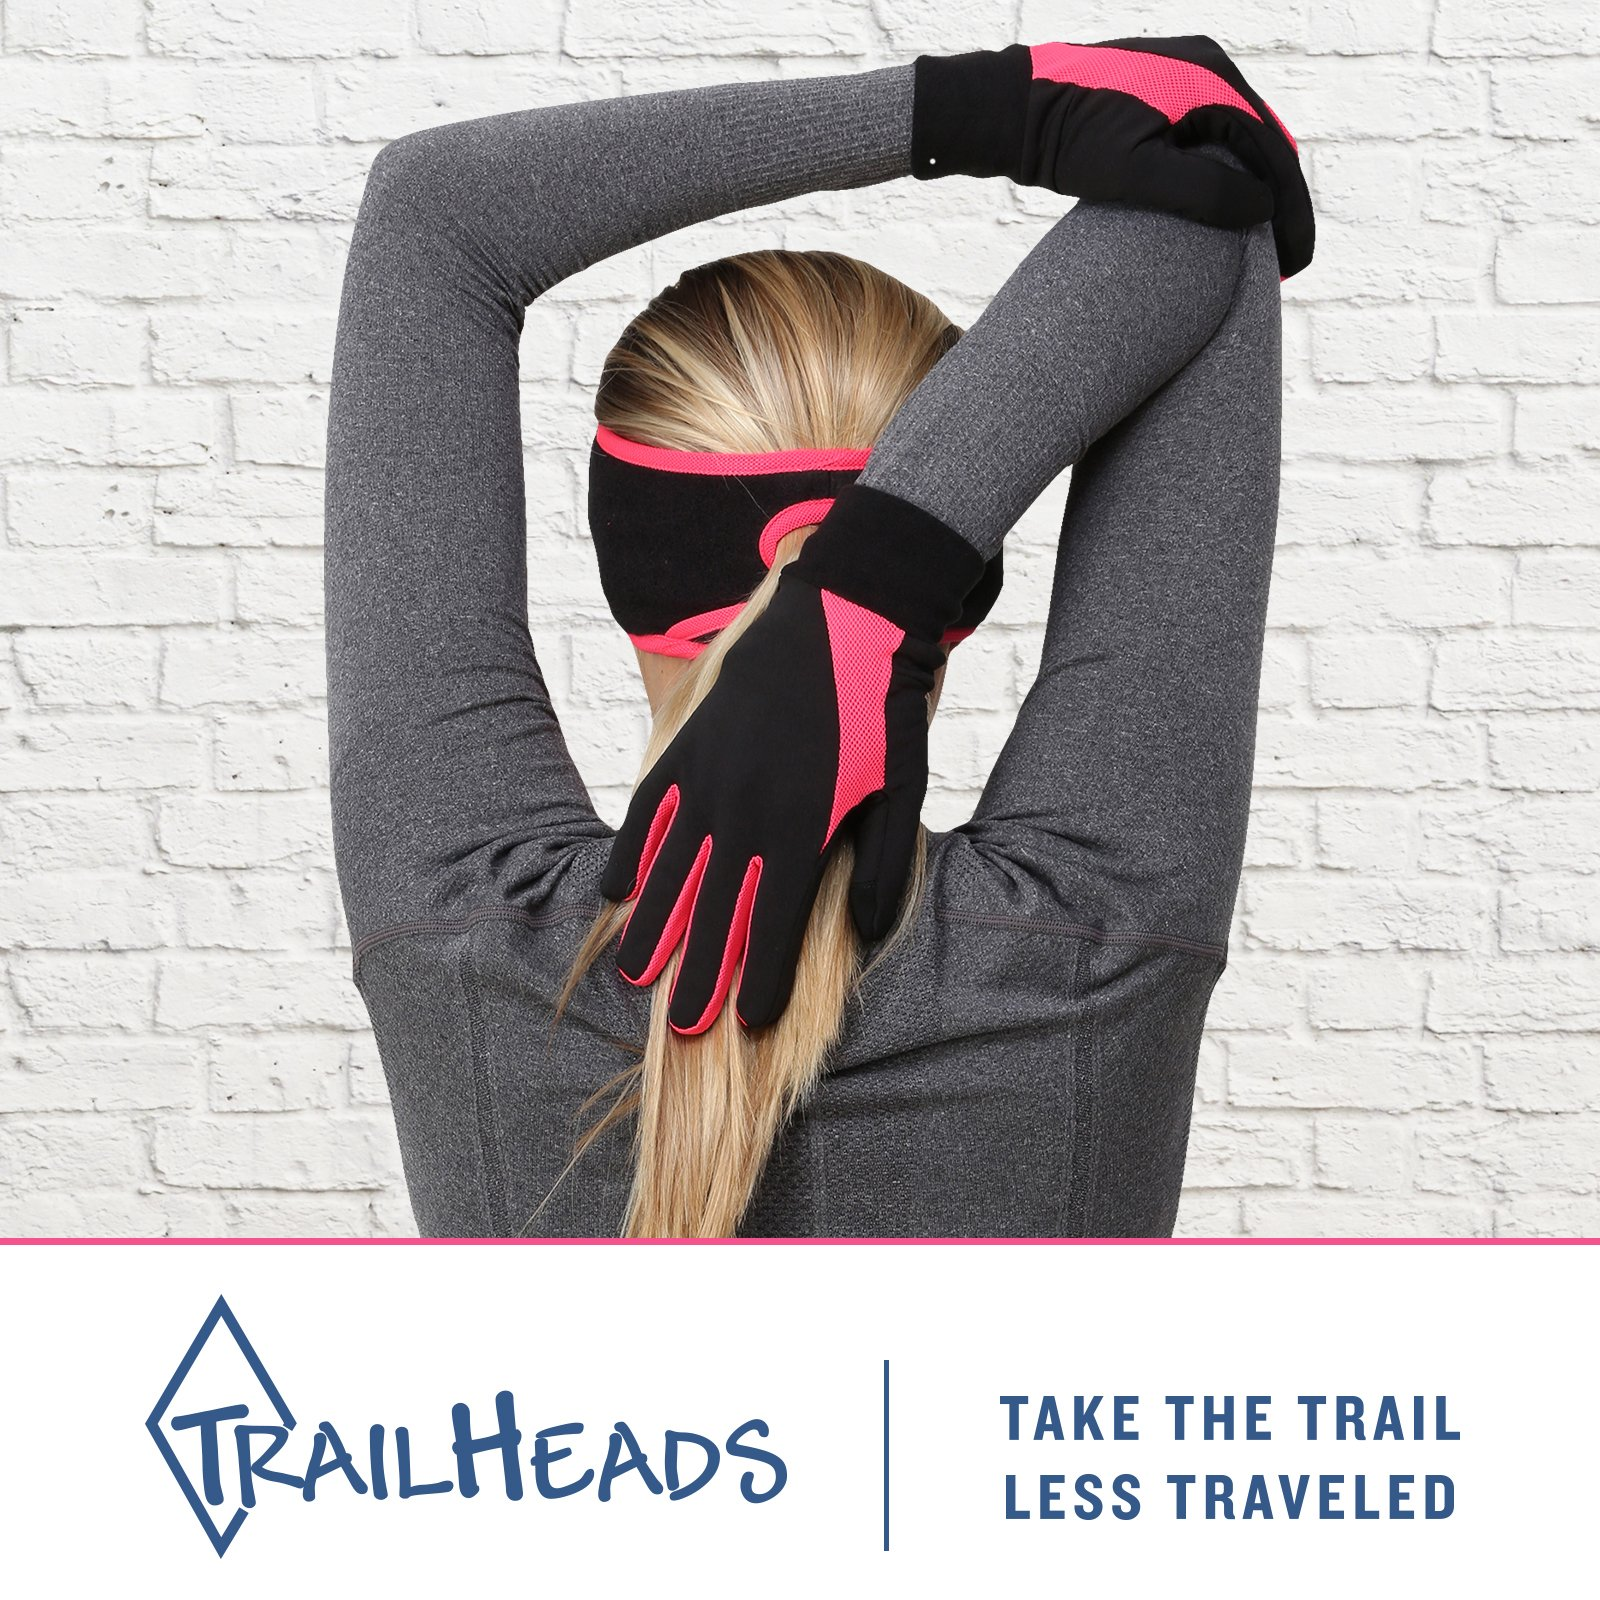 TrailHeads Running Gloves   Lightweight Gloves with Touchscreen Fingers -Black/Bright Coral (Large) by TrailHeads (Image #3)